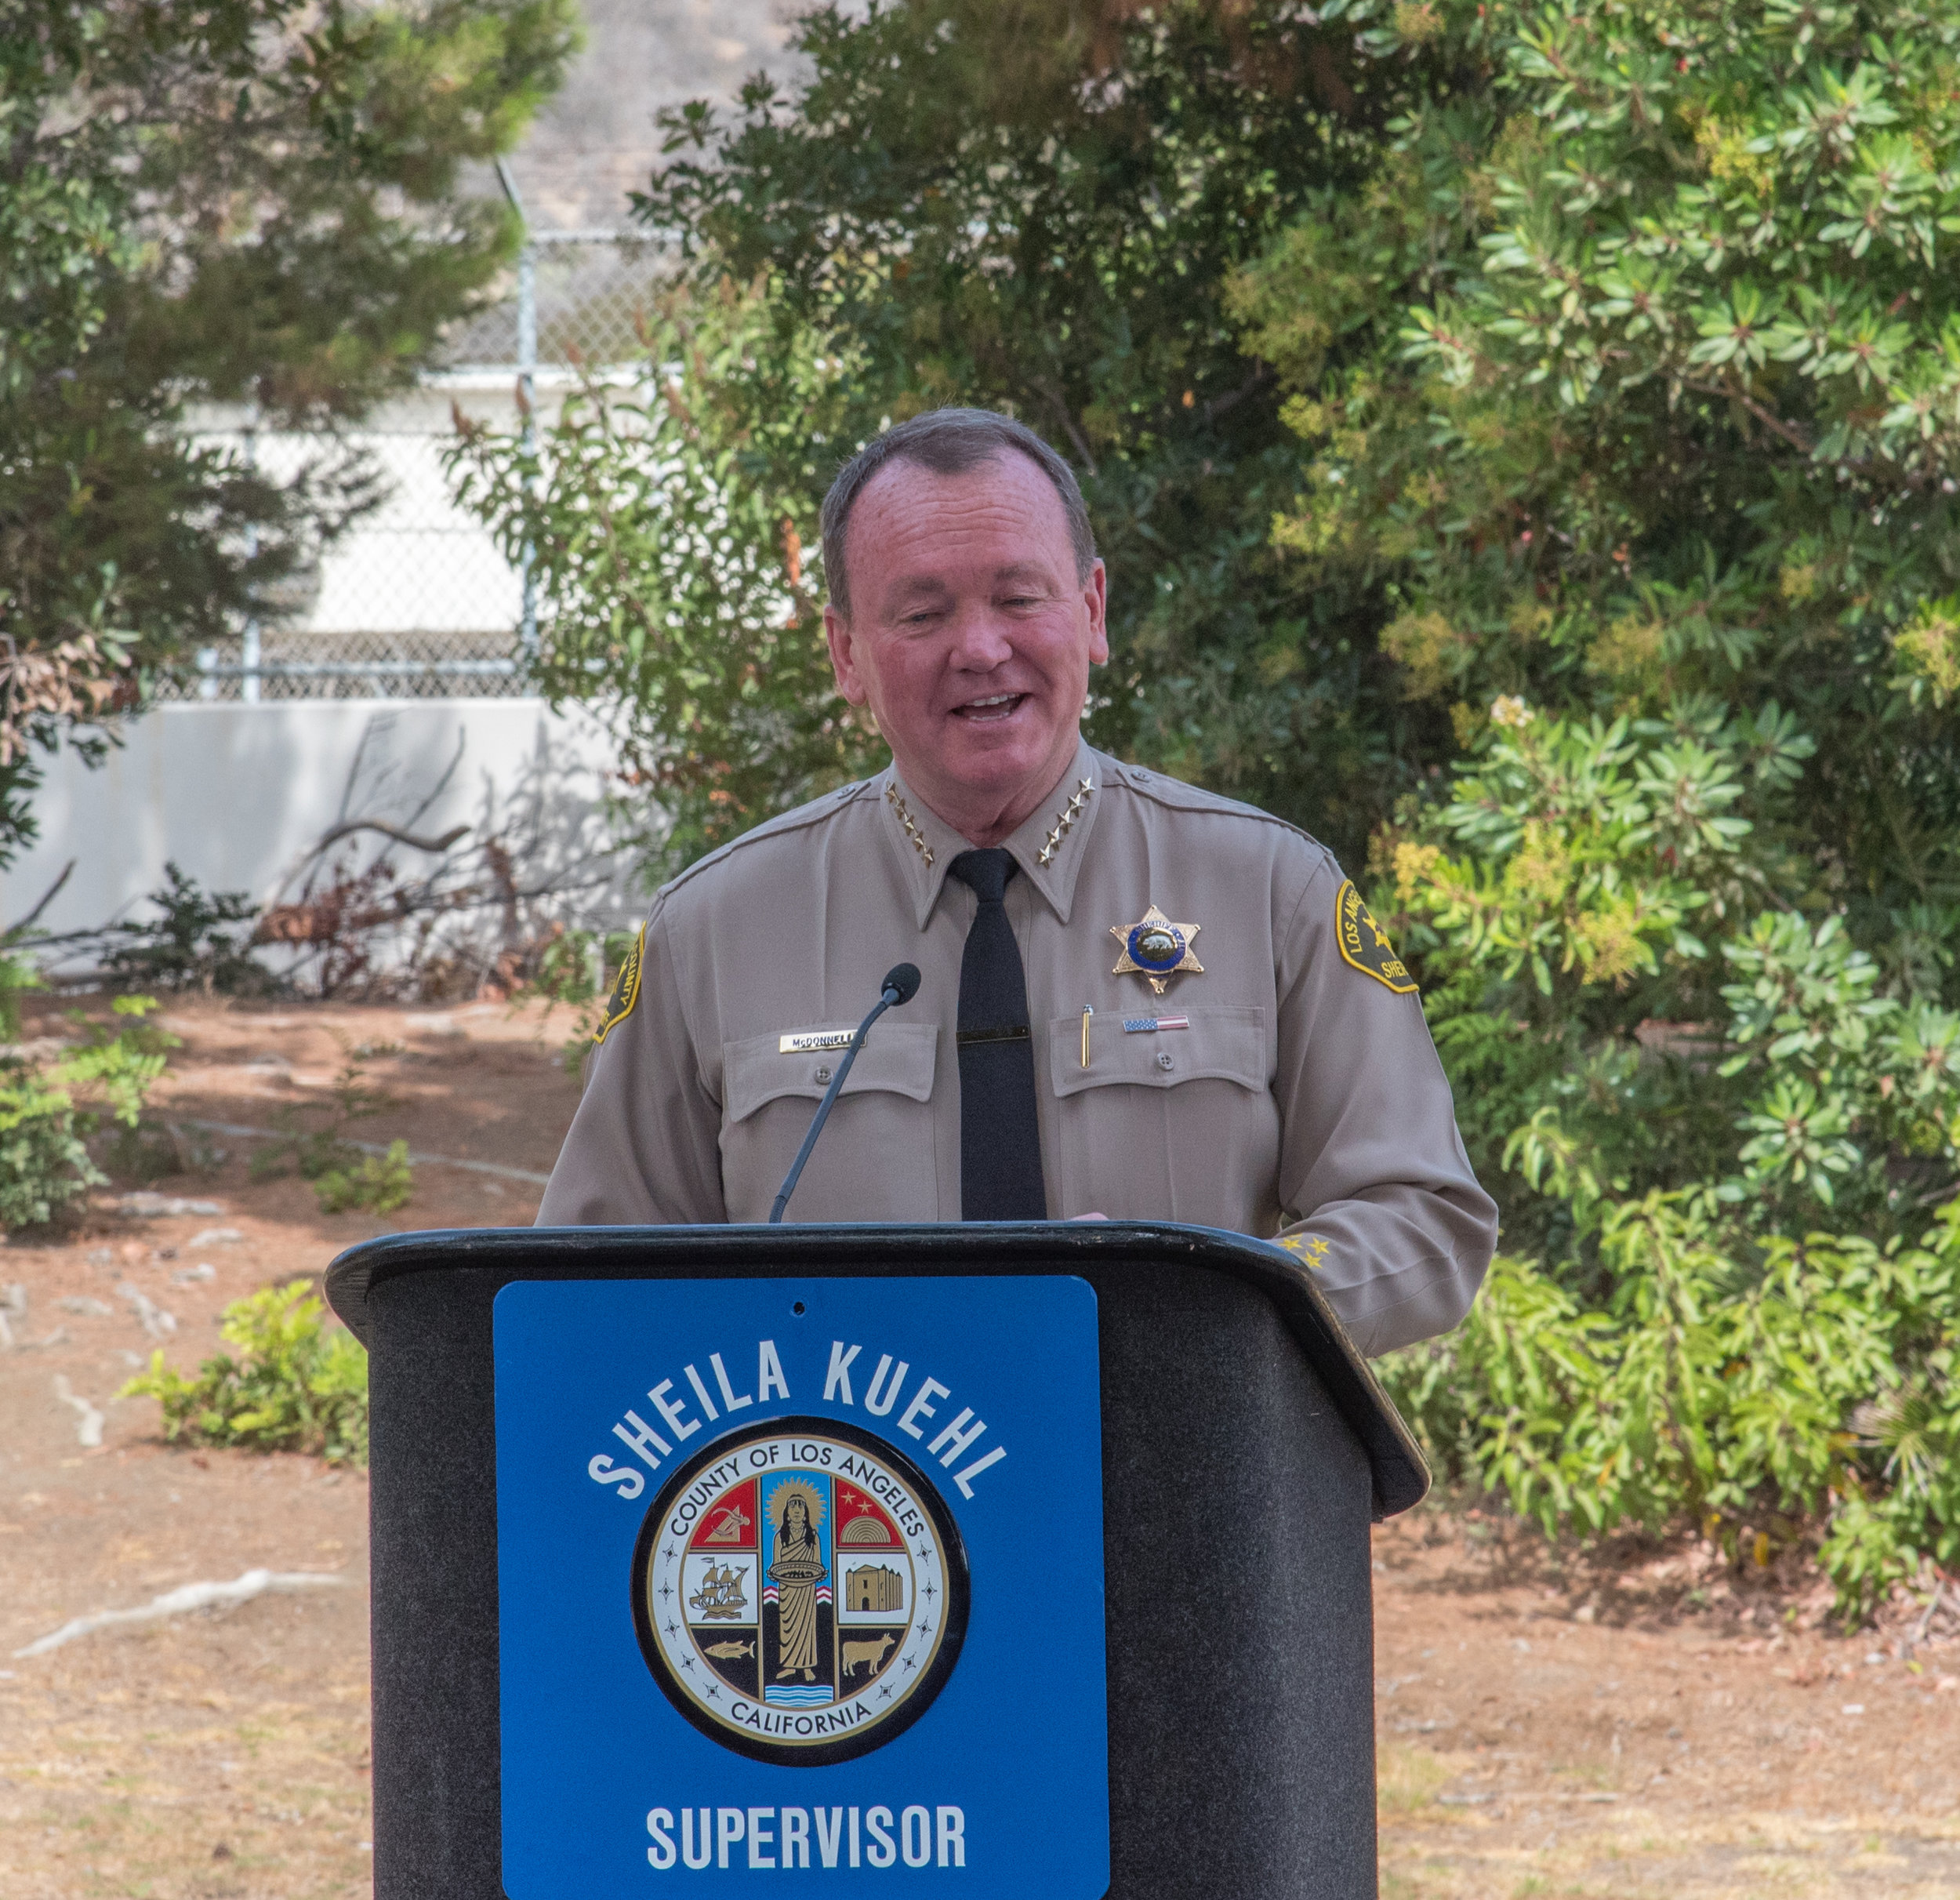 Sheriff Jim McDonald of the Los Angeles County Sheriff's Department speaks to investors, sheriff's deputies, City of Malibu officials, and Santa Monica College Board of Trustees members gathered at the official ground breaking ceremony of the Santa Monica College Malibu Campus & Los Angeles County Sheriff's Substation on September 21, 2018 in Malibu, California.